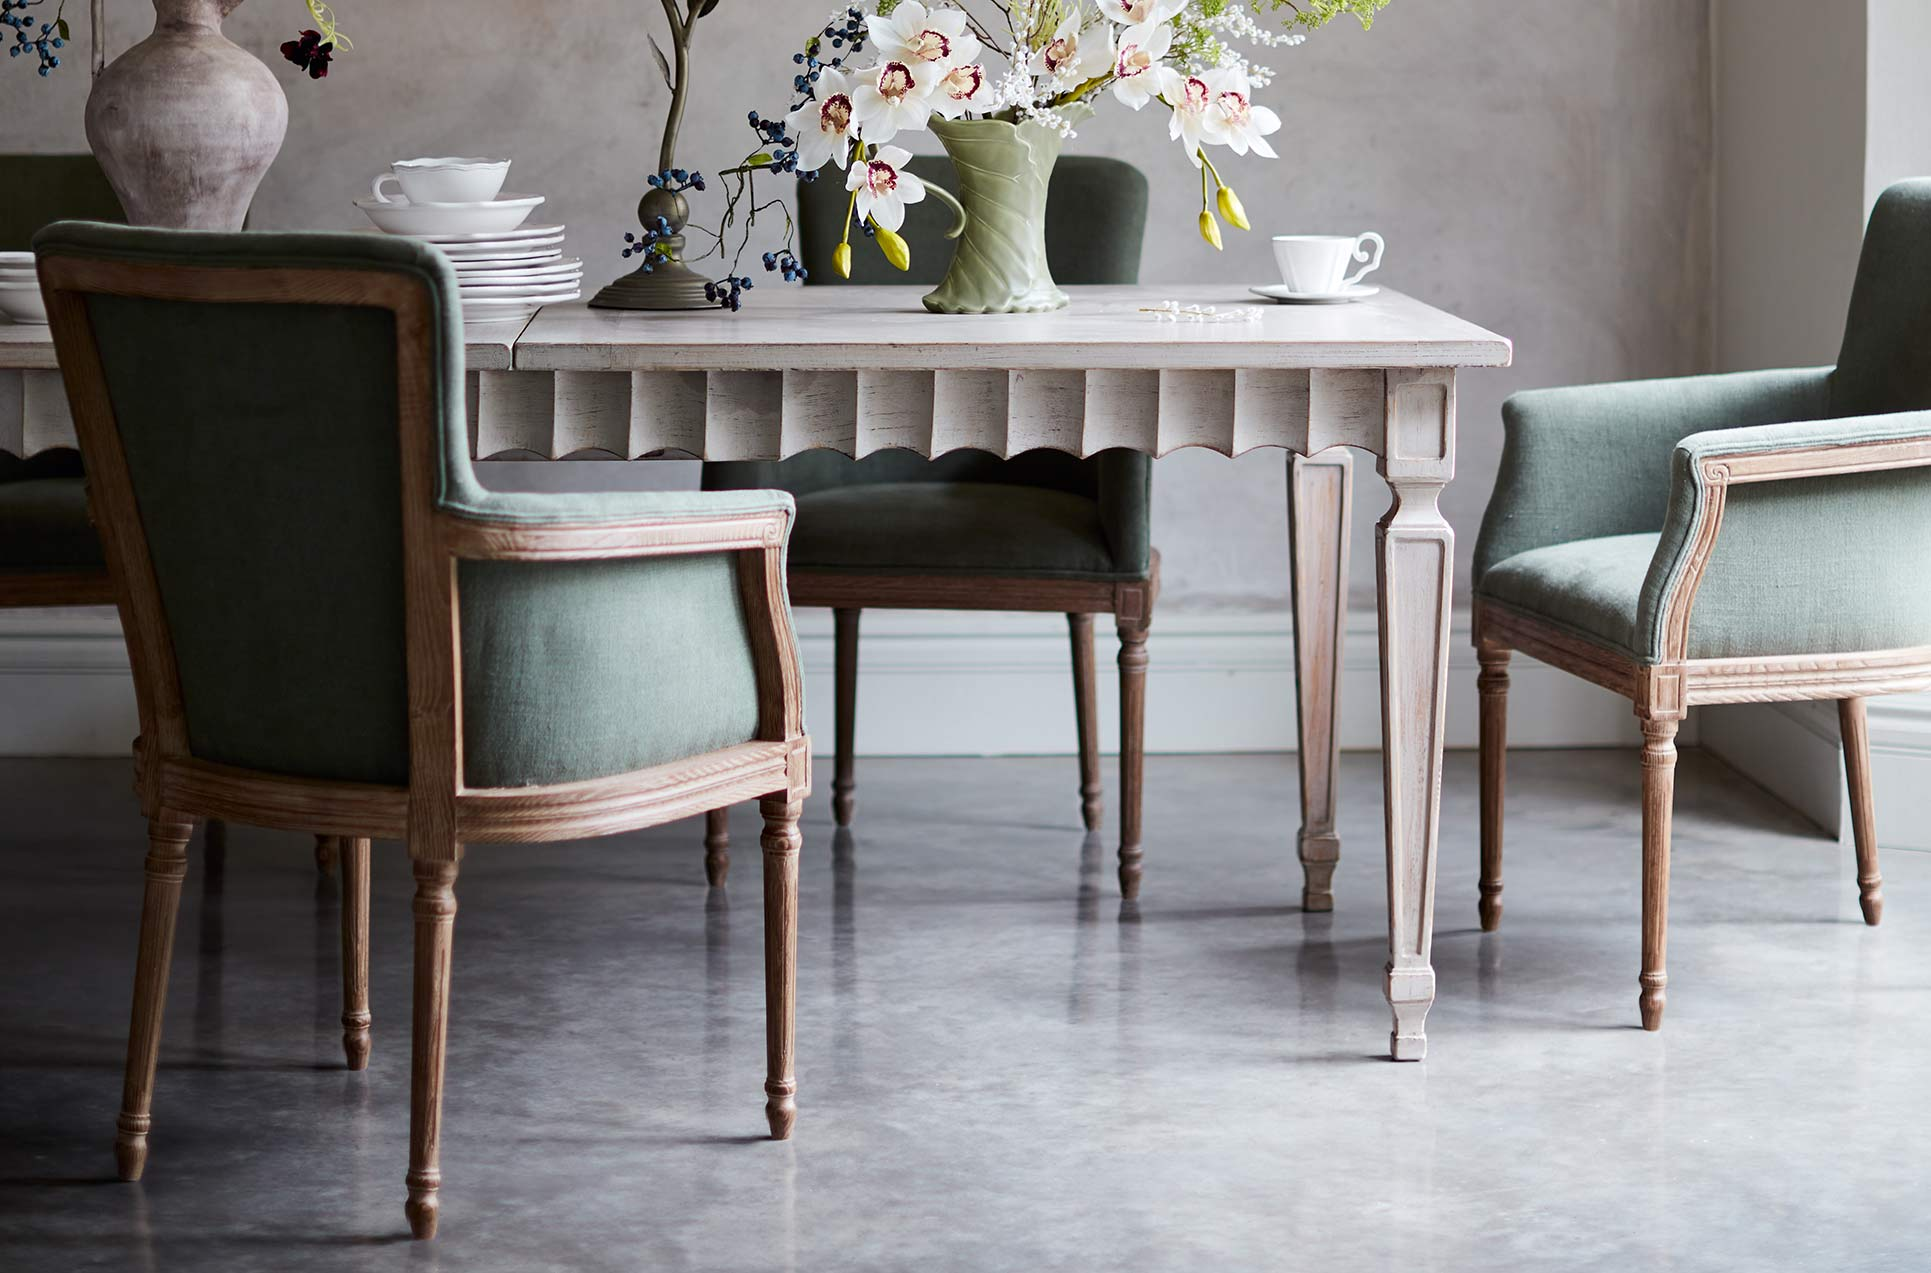 Green linen dining chairs with arms around a light wood dining table